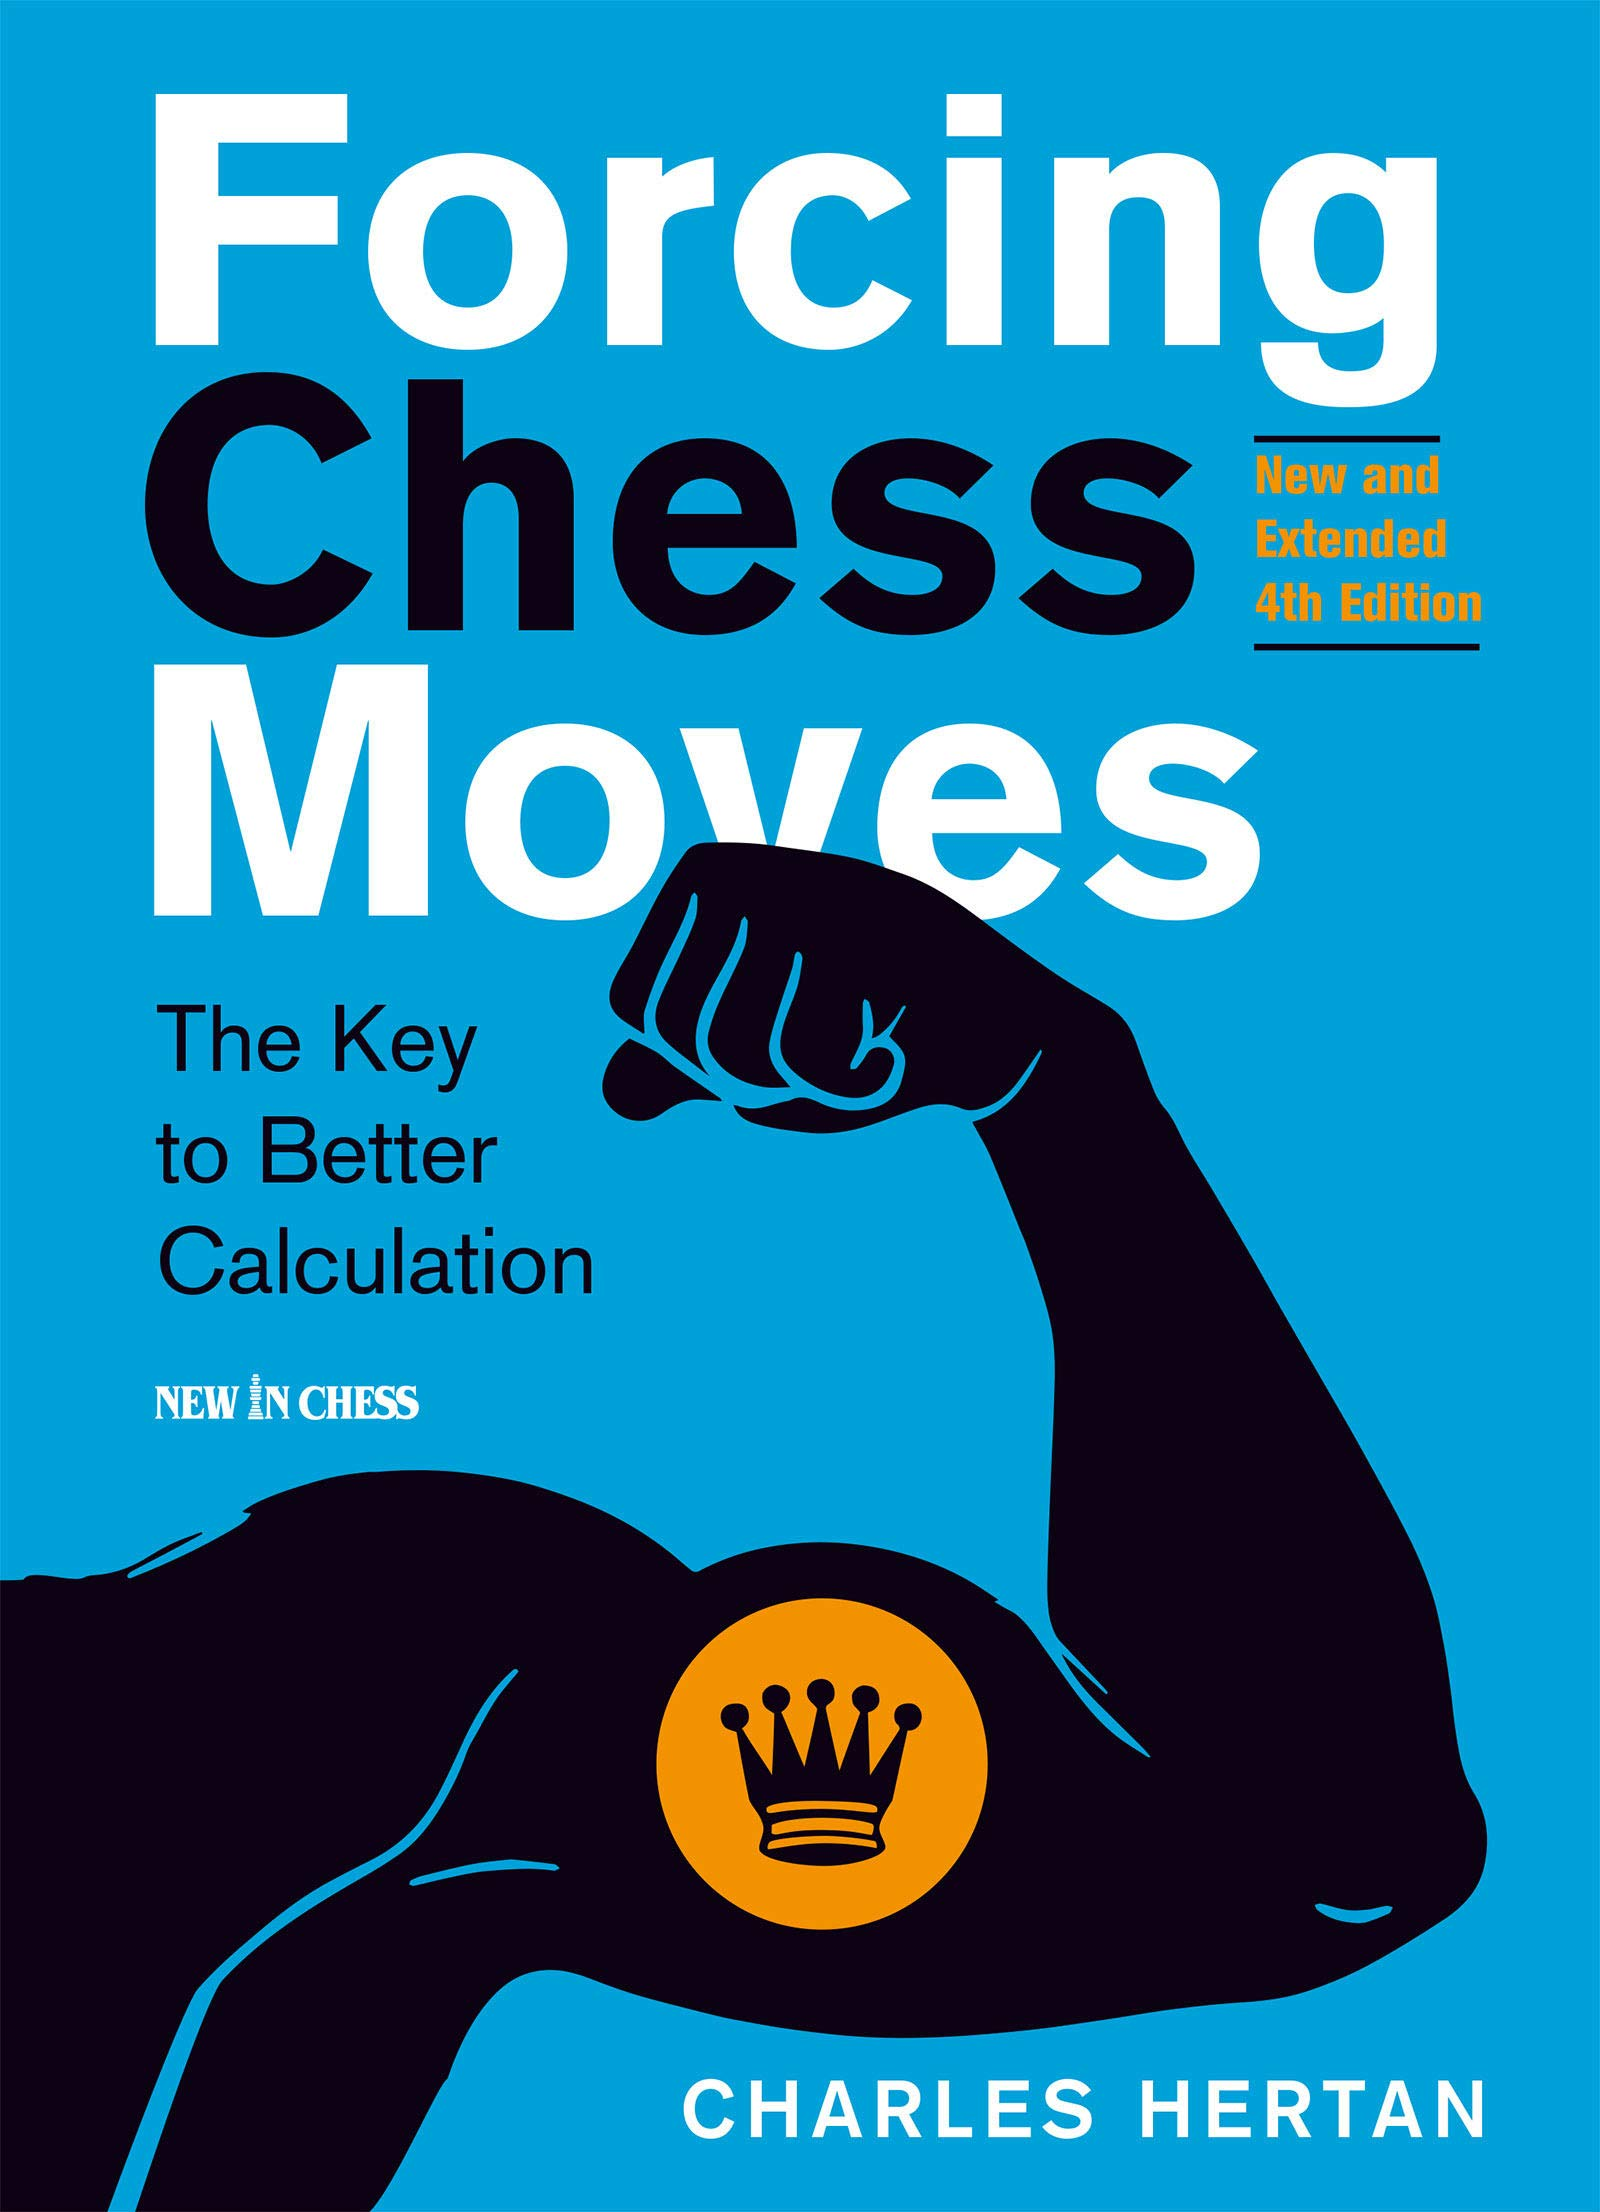 Forcing Chess Moves : The Key to Better Calculation, New in Chess, Charles Hertan, 2019